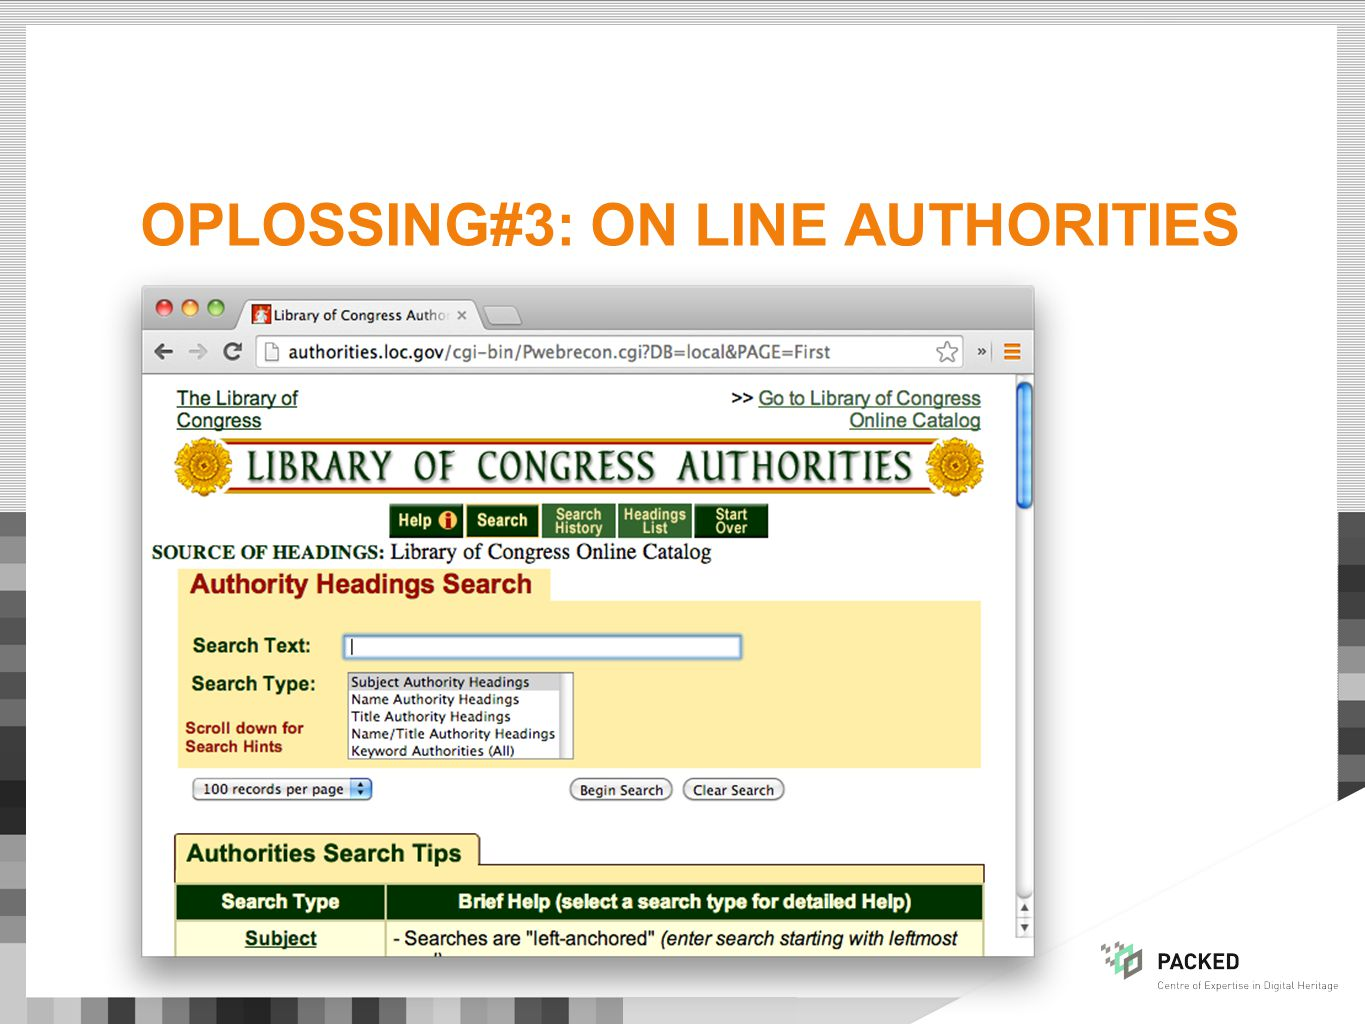 OPLOSSING#3: ON LINE AUTHORITIES